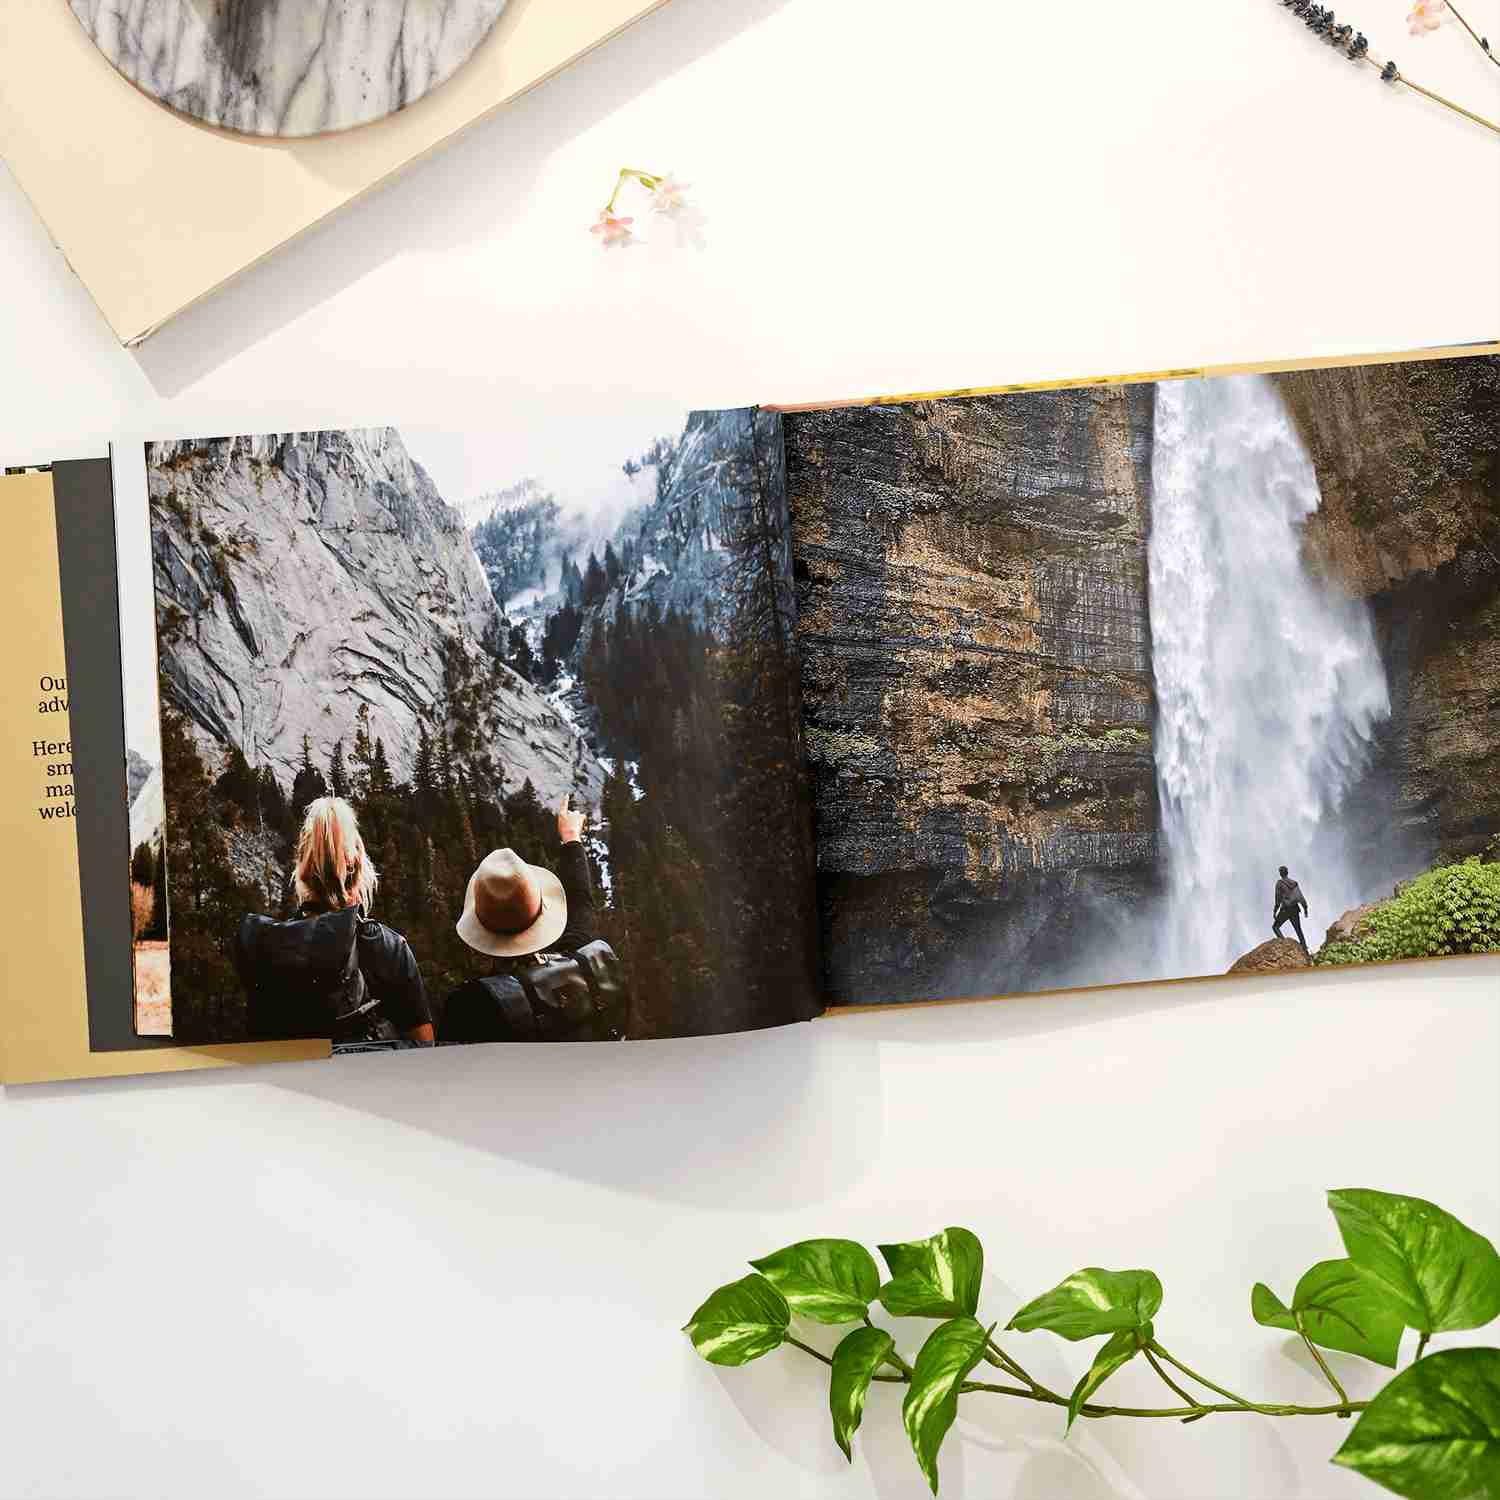 Personalize a hardcover photobook using your own images and photos